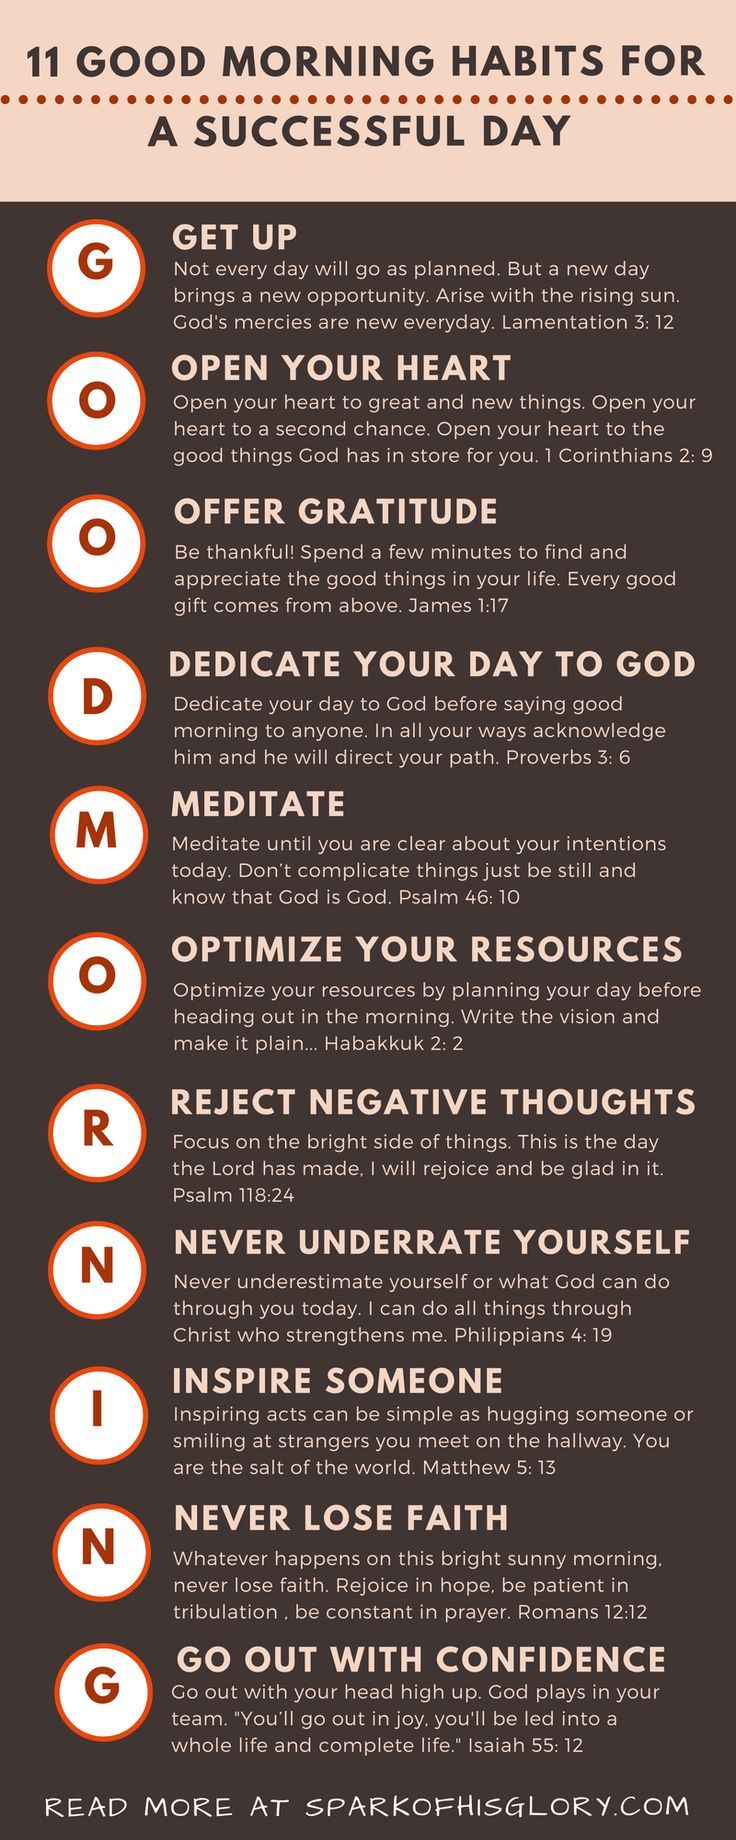 Good Morning Spiritual Quotes 11 Good Morning Habits For A Successful Day  Morning Pictures